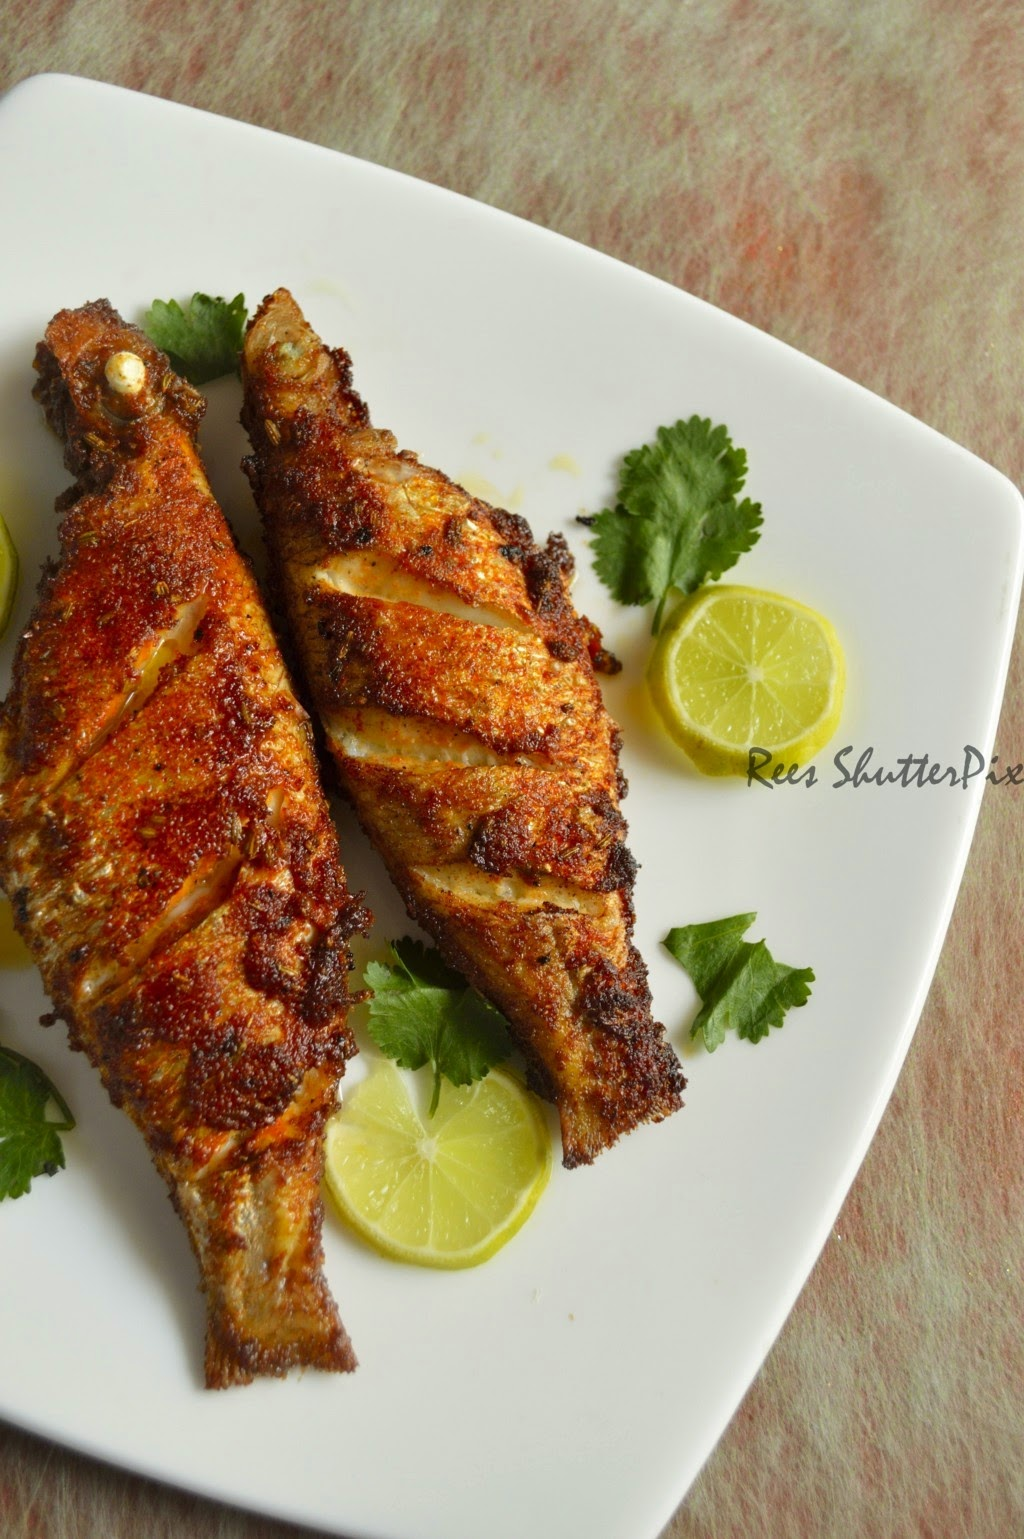 sankara meen varuval, fish fry recipes, how to make fish fry, red snapper fish fry step by step pictures with recipe